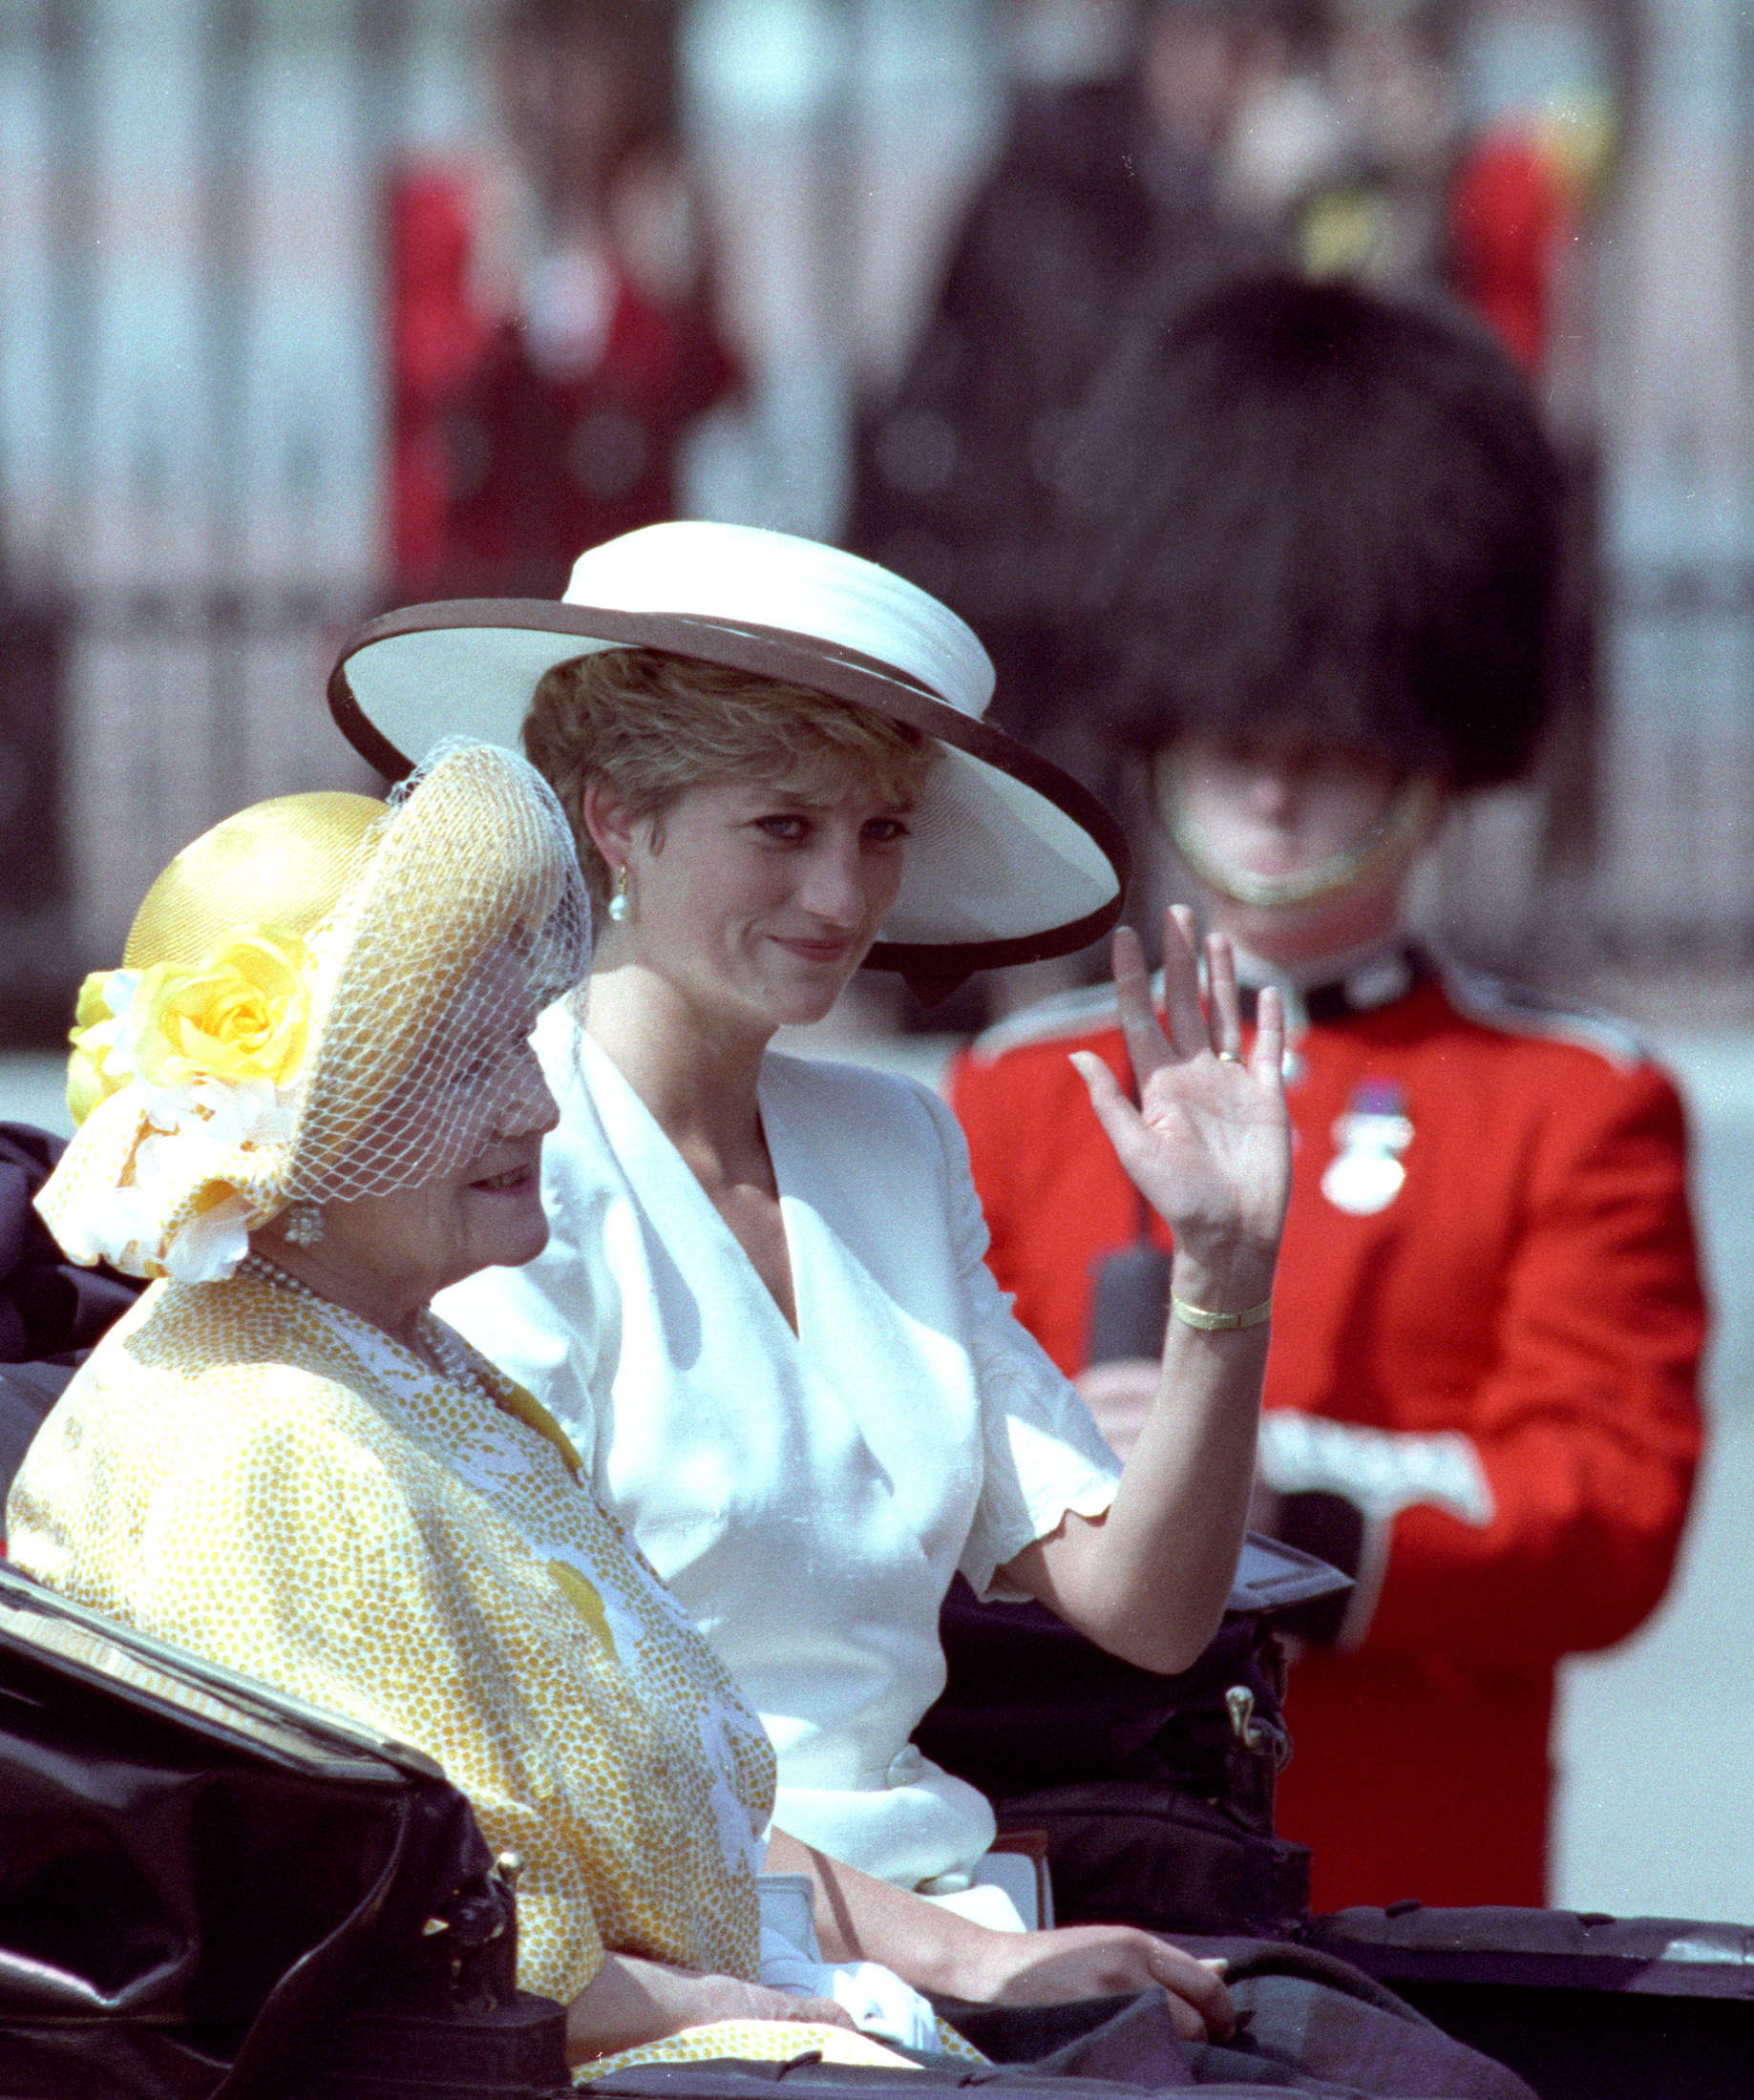 The Princess of Wales and the Queen mother ride in their carriage from Buckingham Palace in London on June 13, 1992. Photo by Kevin Lamarque/Reuters